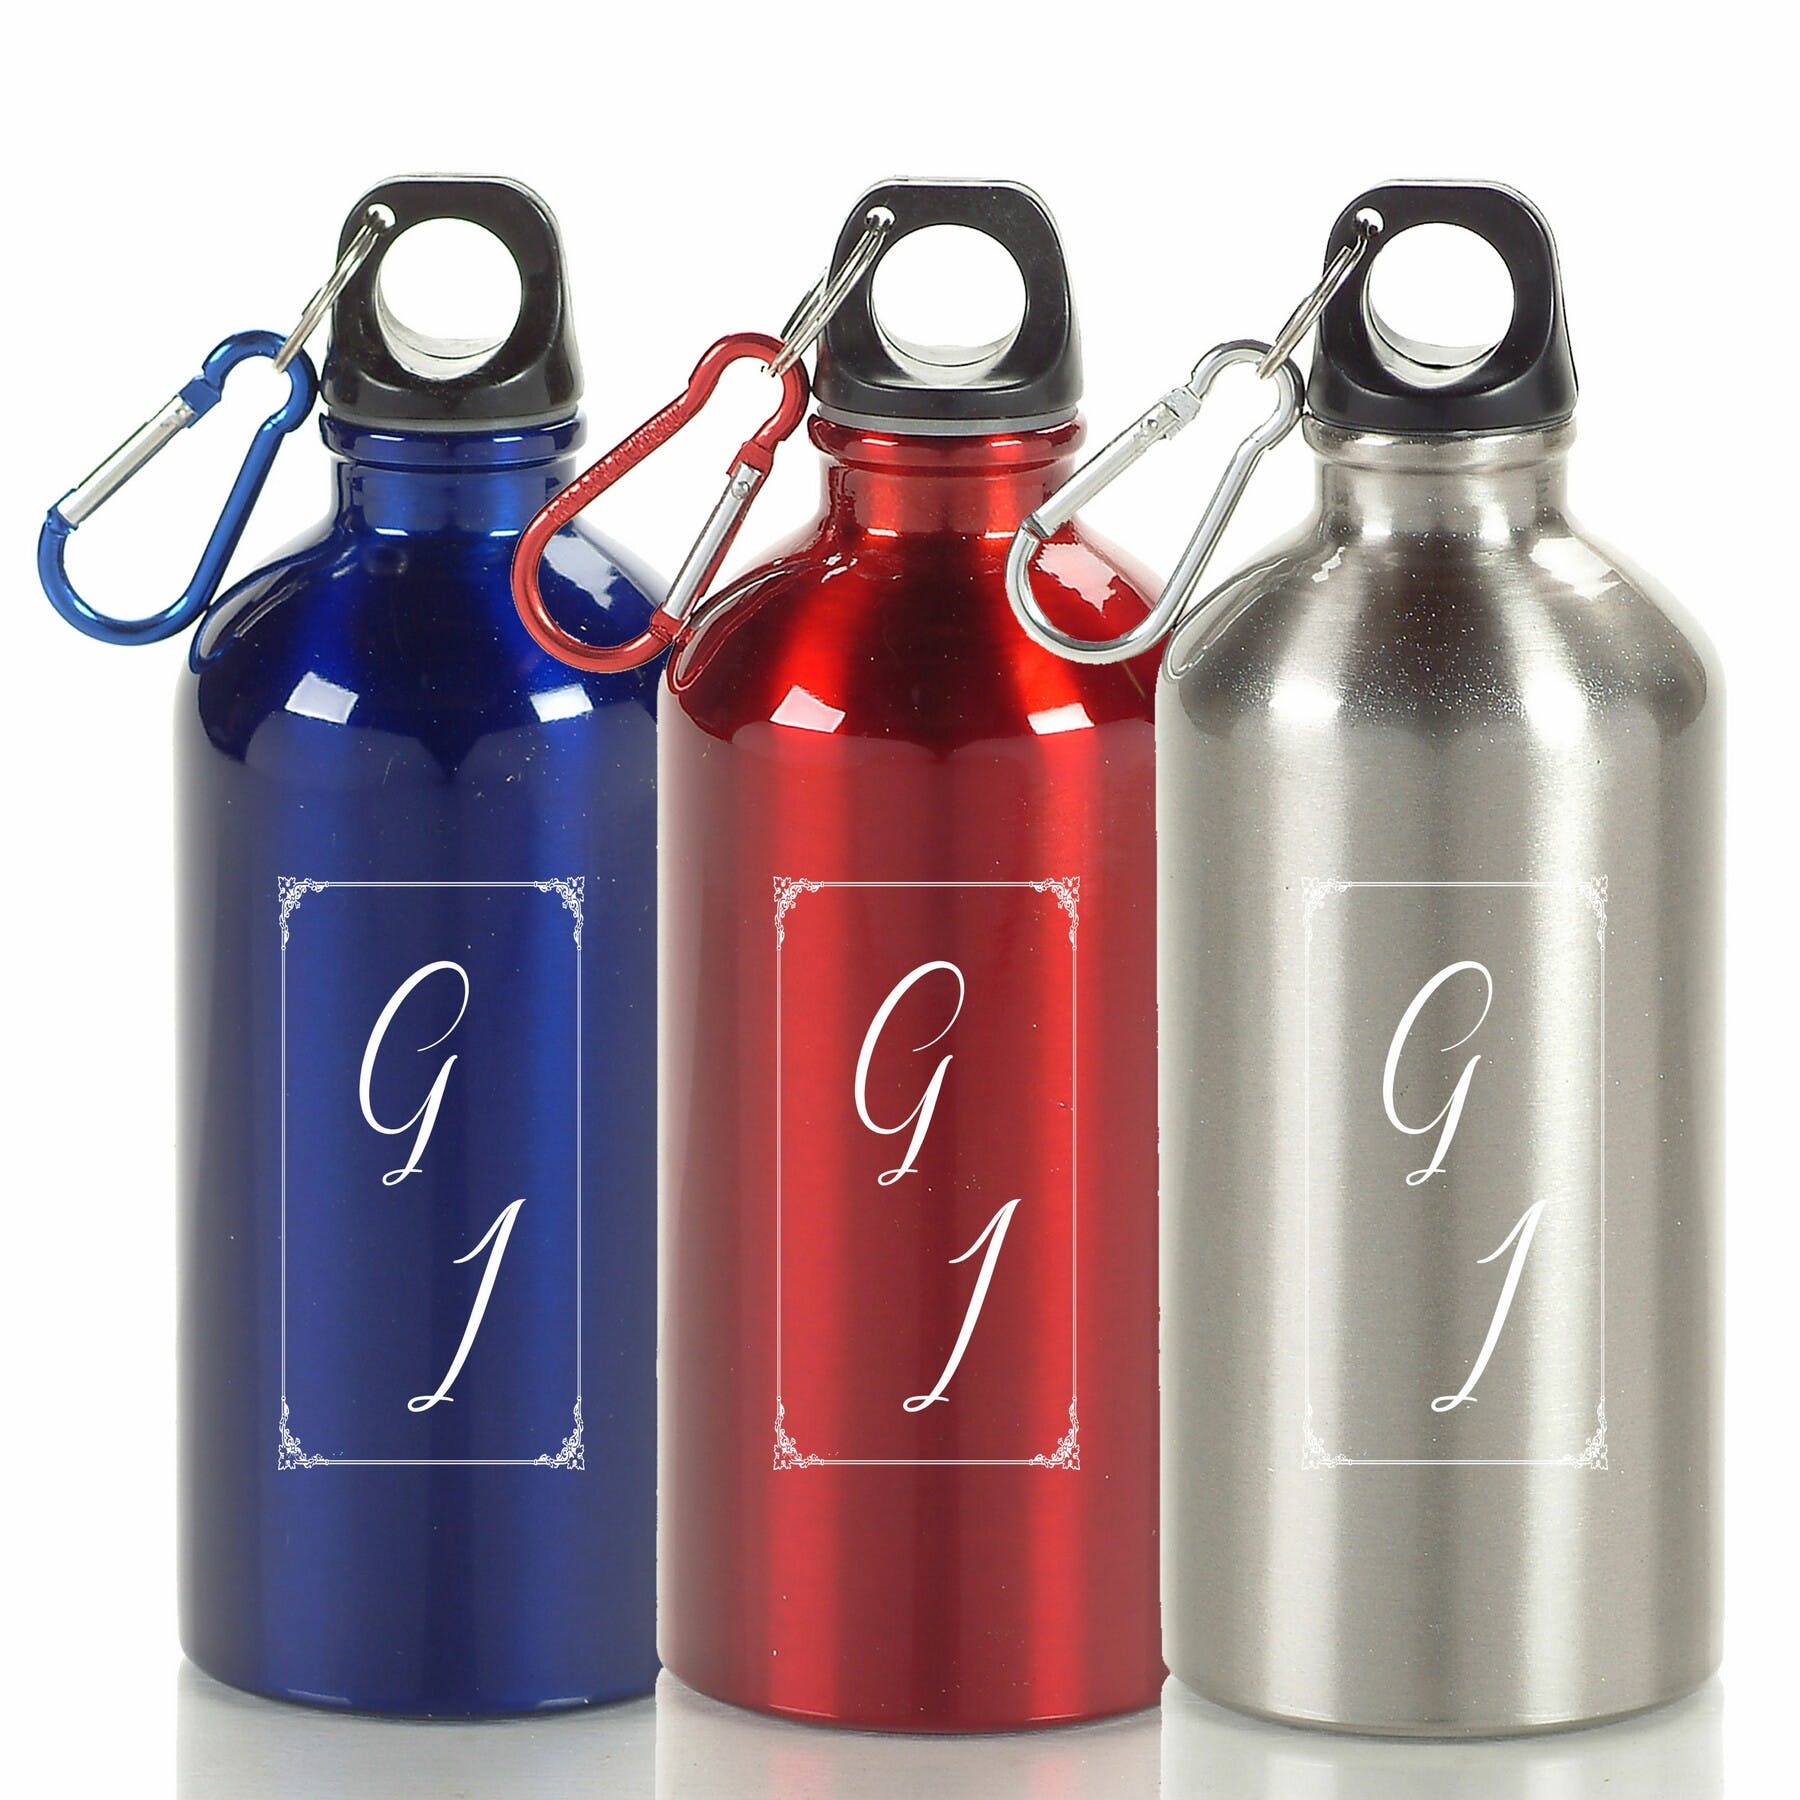 17 Oz. Stainless Steel Bottle with Carabiner (Item # AFNON-HWNYG) Promotional water bottle sold by InkEasy